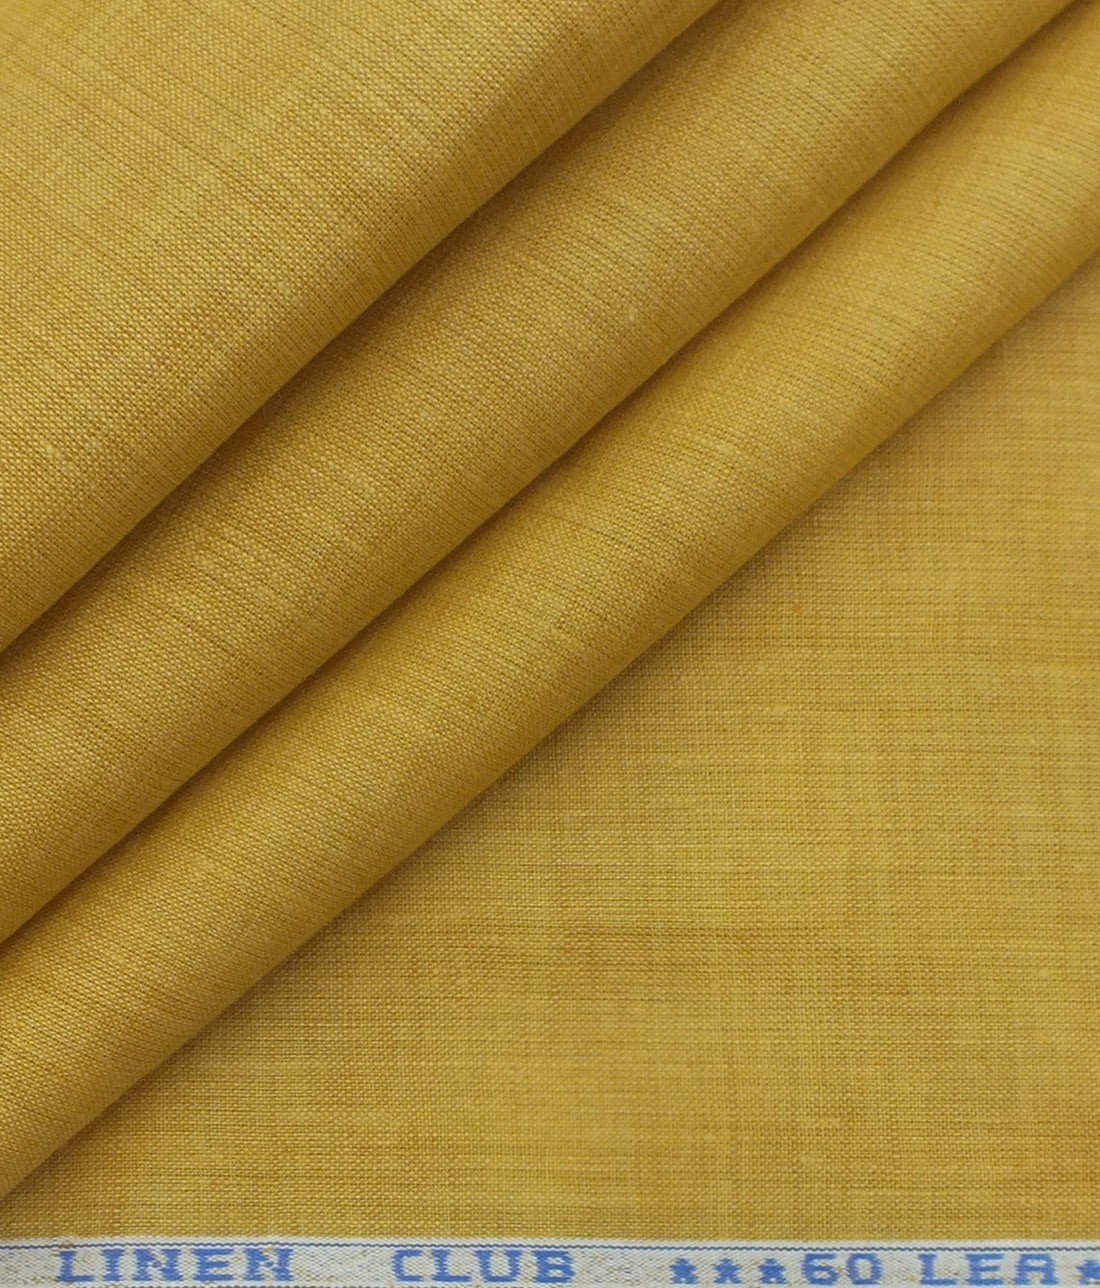 Linen Club Butterscotch Beige 100% Pure Linen 60 LEA Self Design Shirt Fabric (1.60 M)